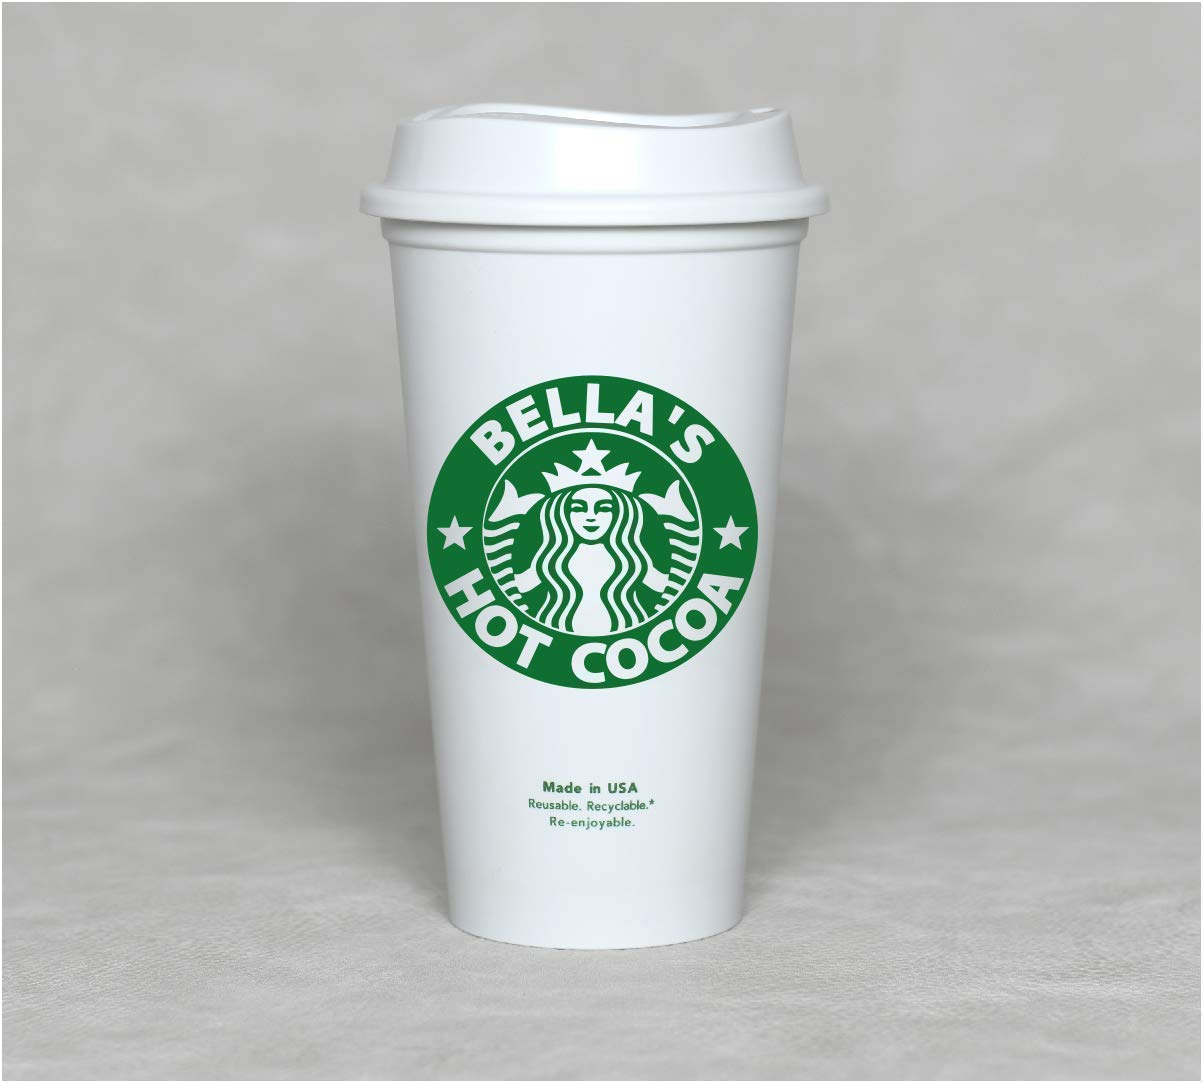 Personalized 16 oz Reusable Coffee Cup Grande Hot Cup with Custom Name and Lids//Sleeves.